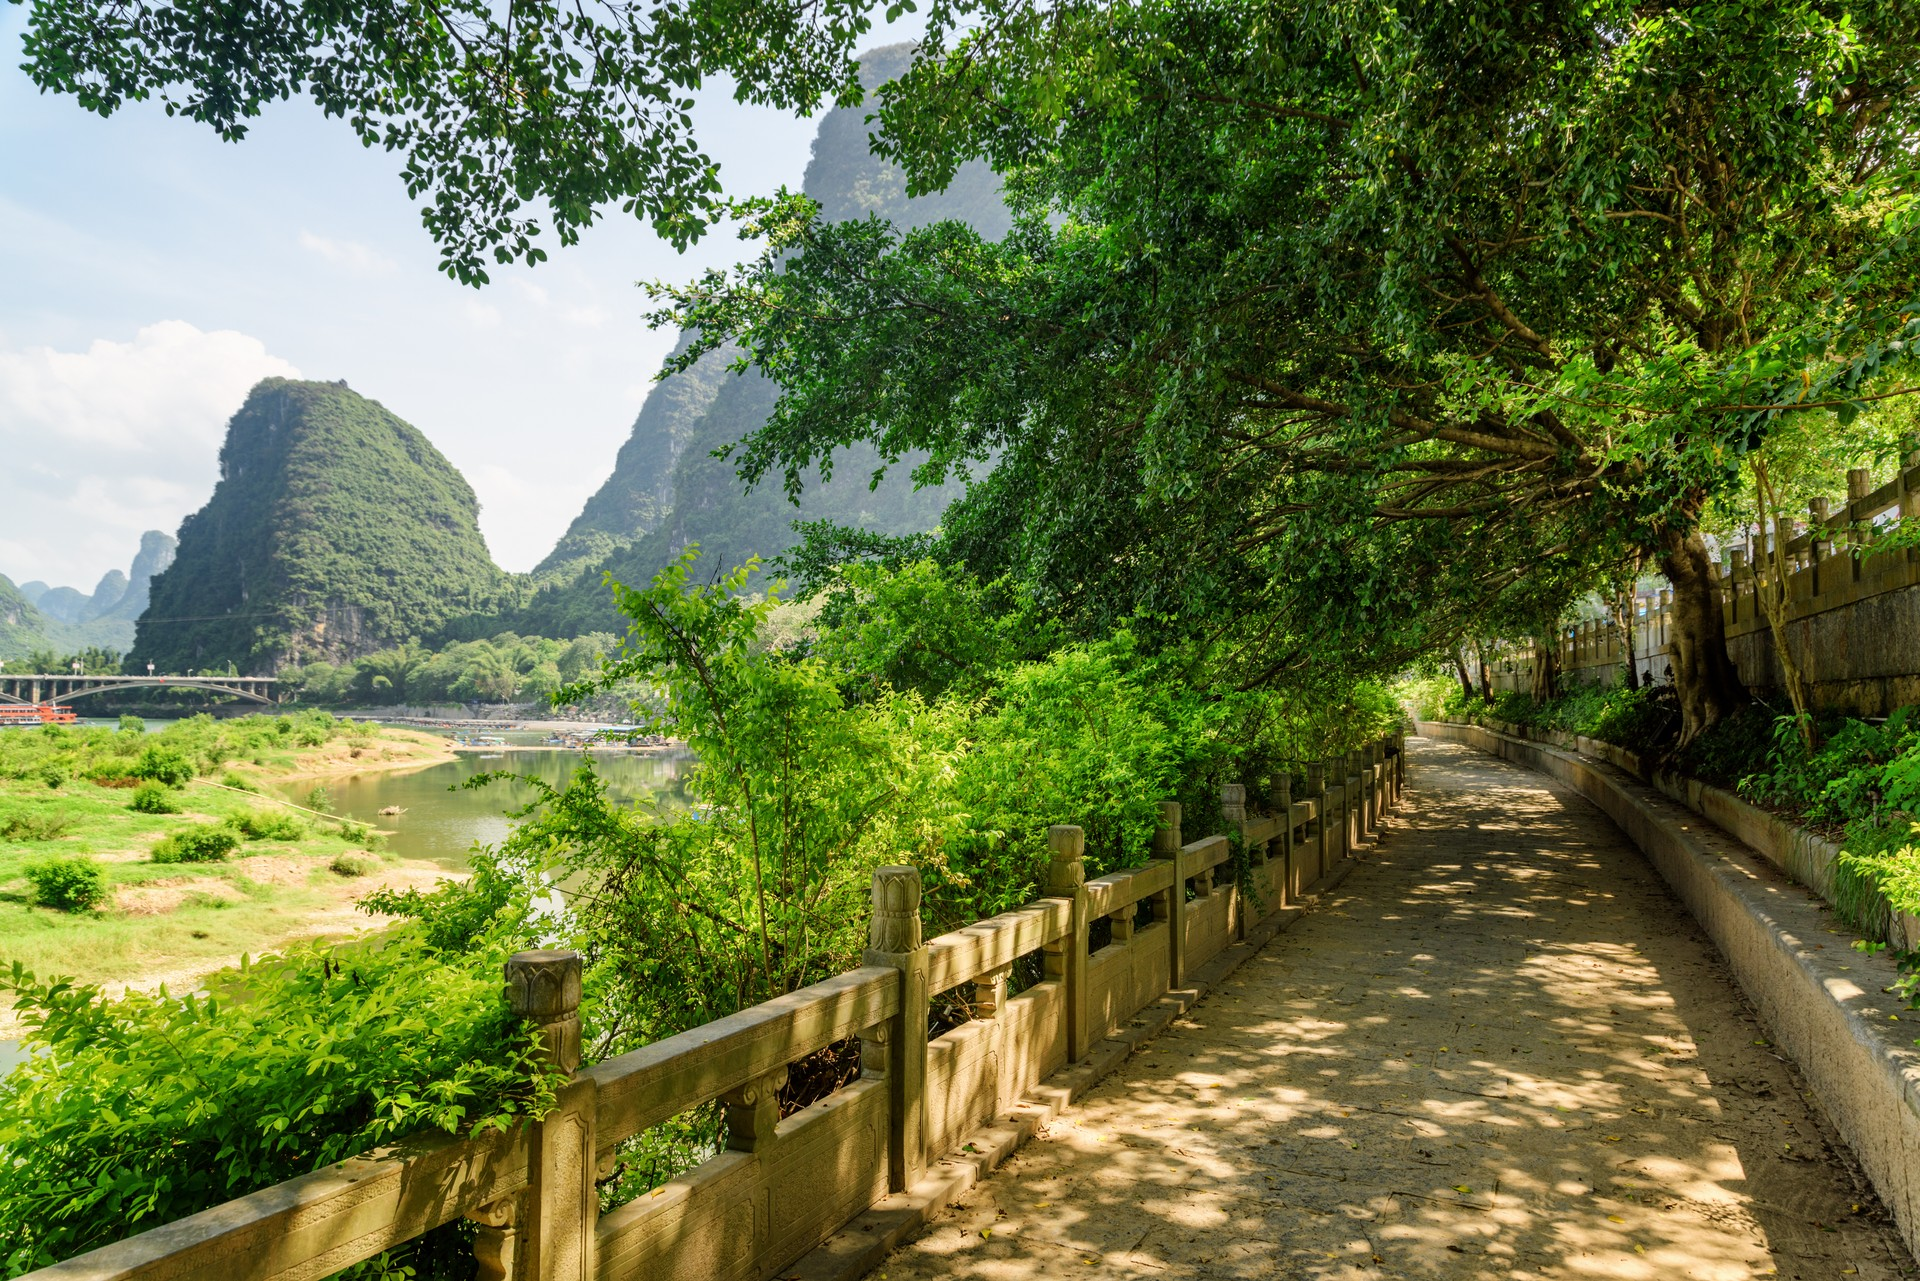 Walkway alongside Li River, China